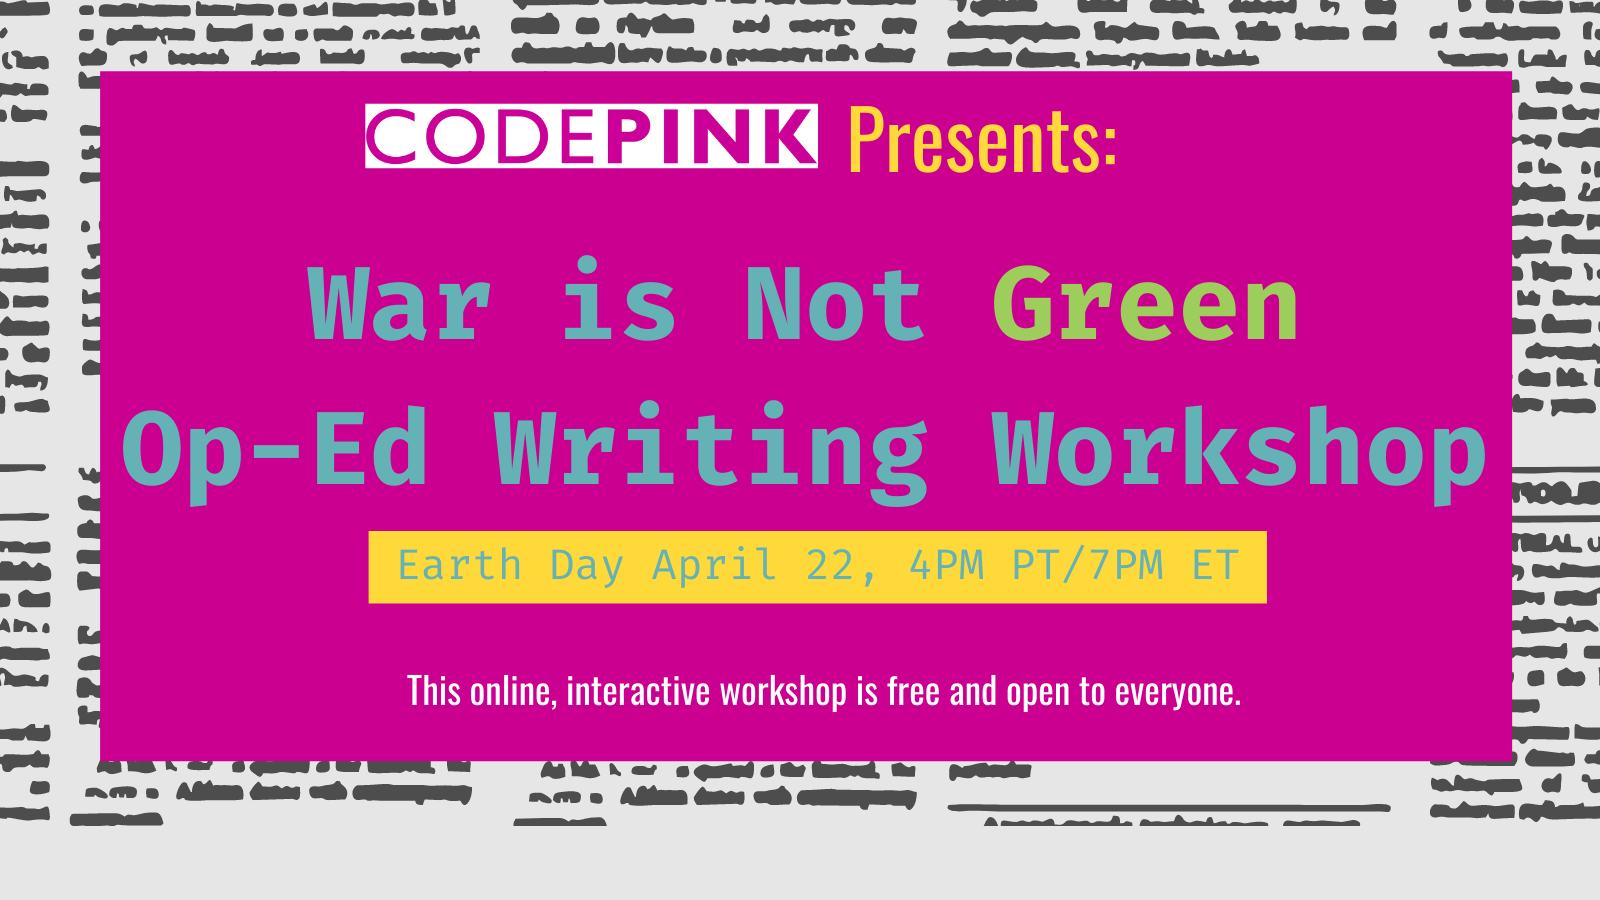 War is Not Green Op-Ed Writing Workshop